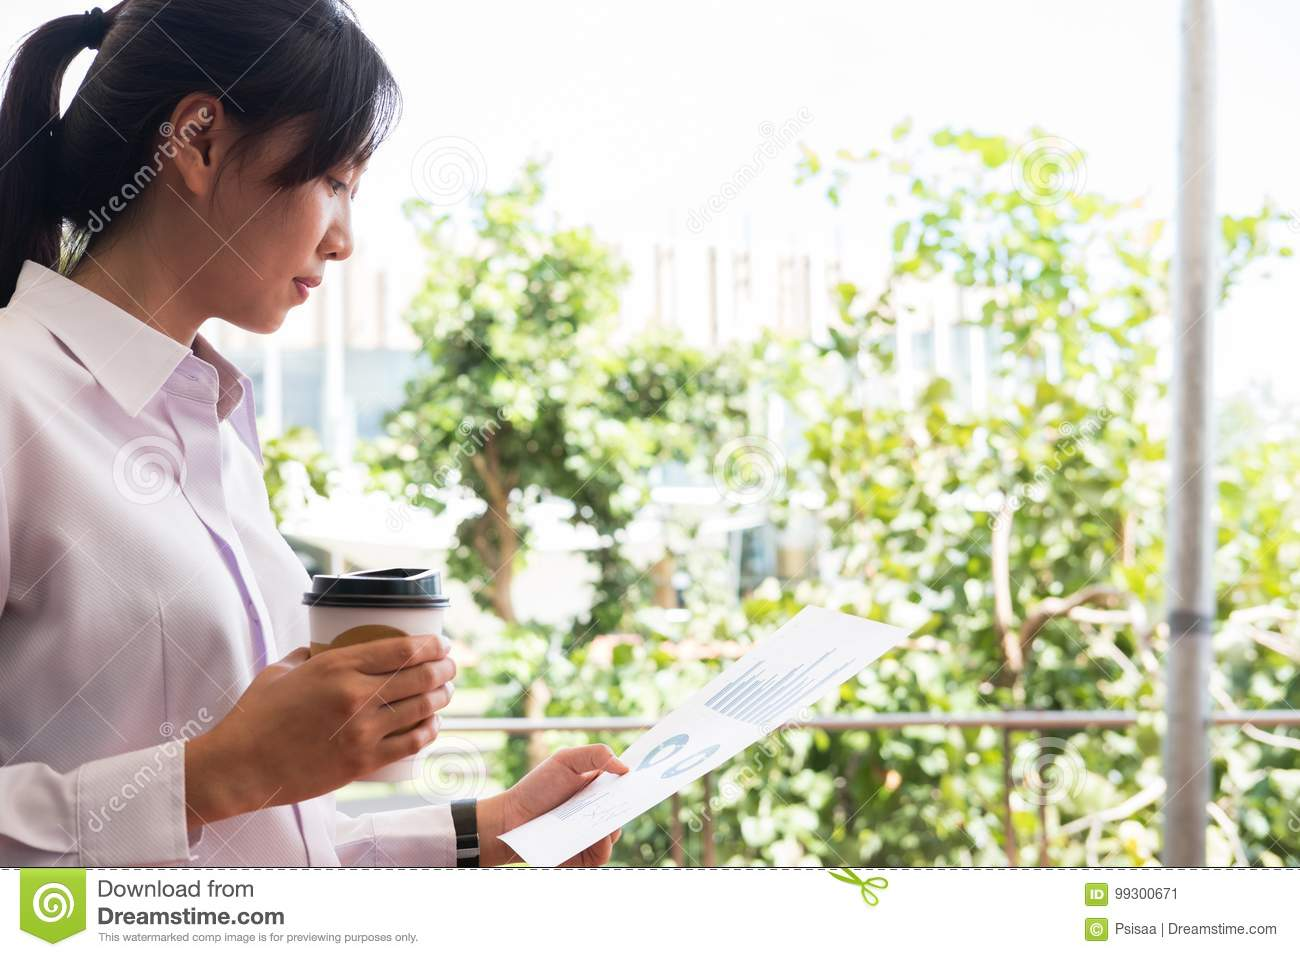 businesswoman holding coffee cup & financial summary graph outside office building. beautiful young asian woman with tea